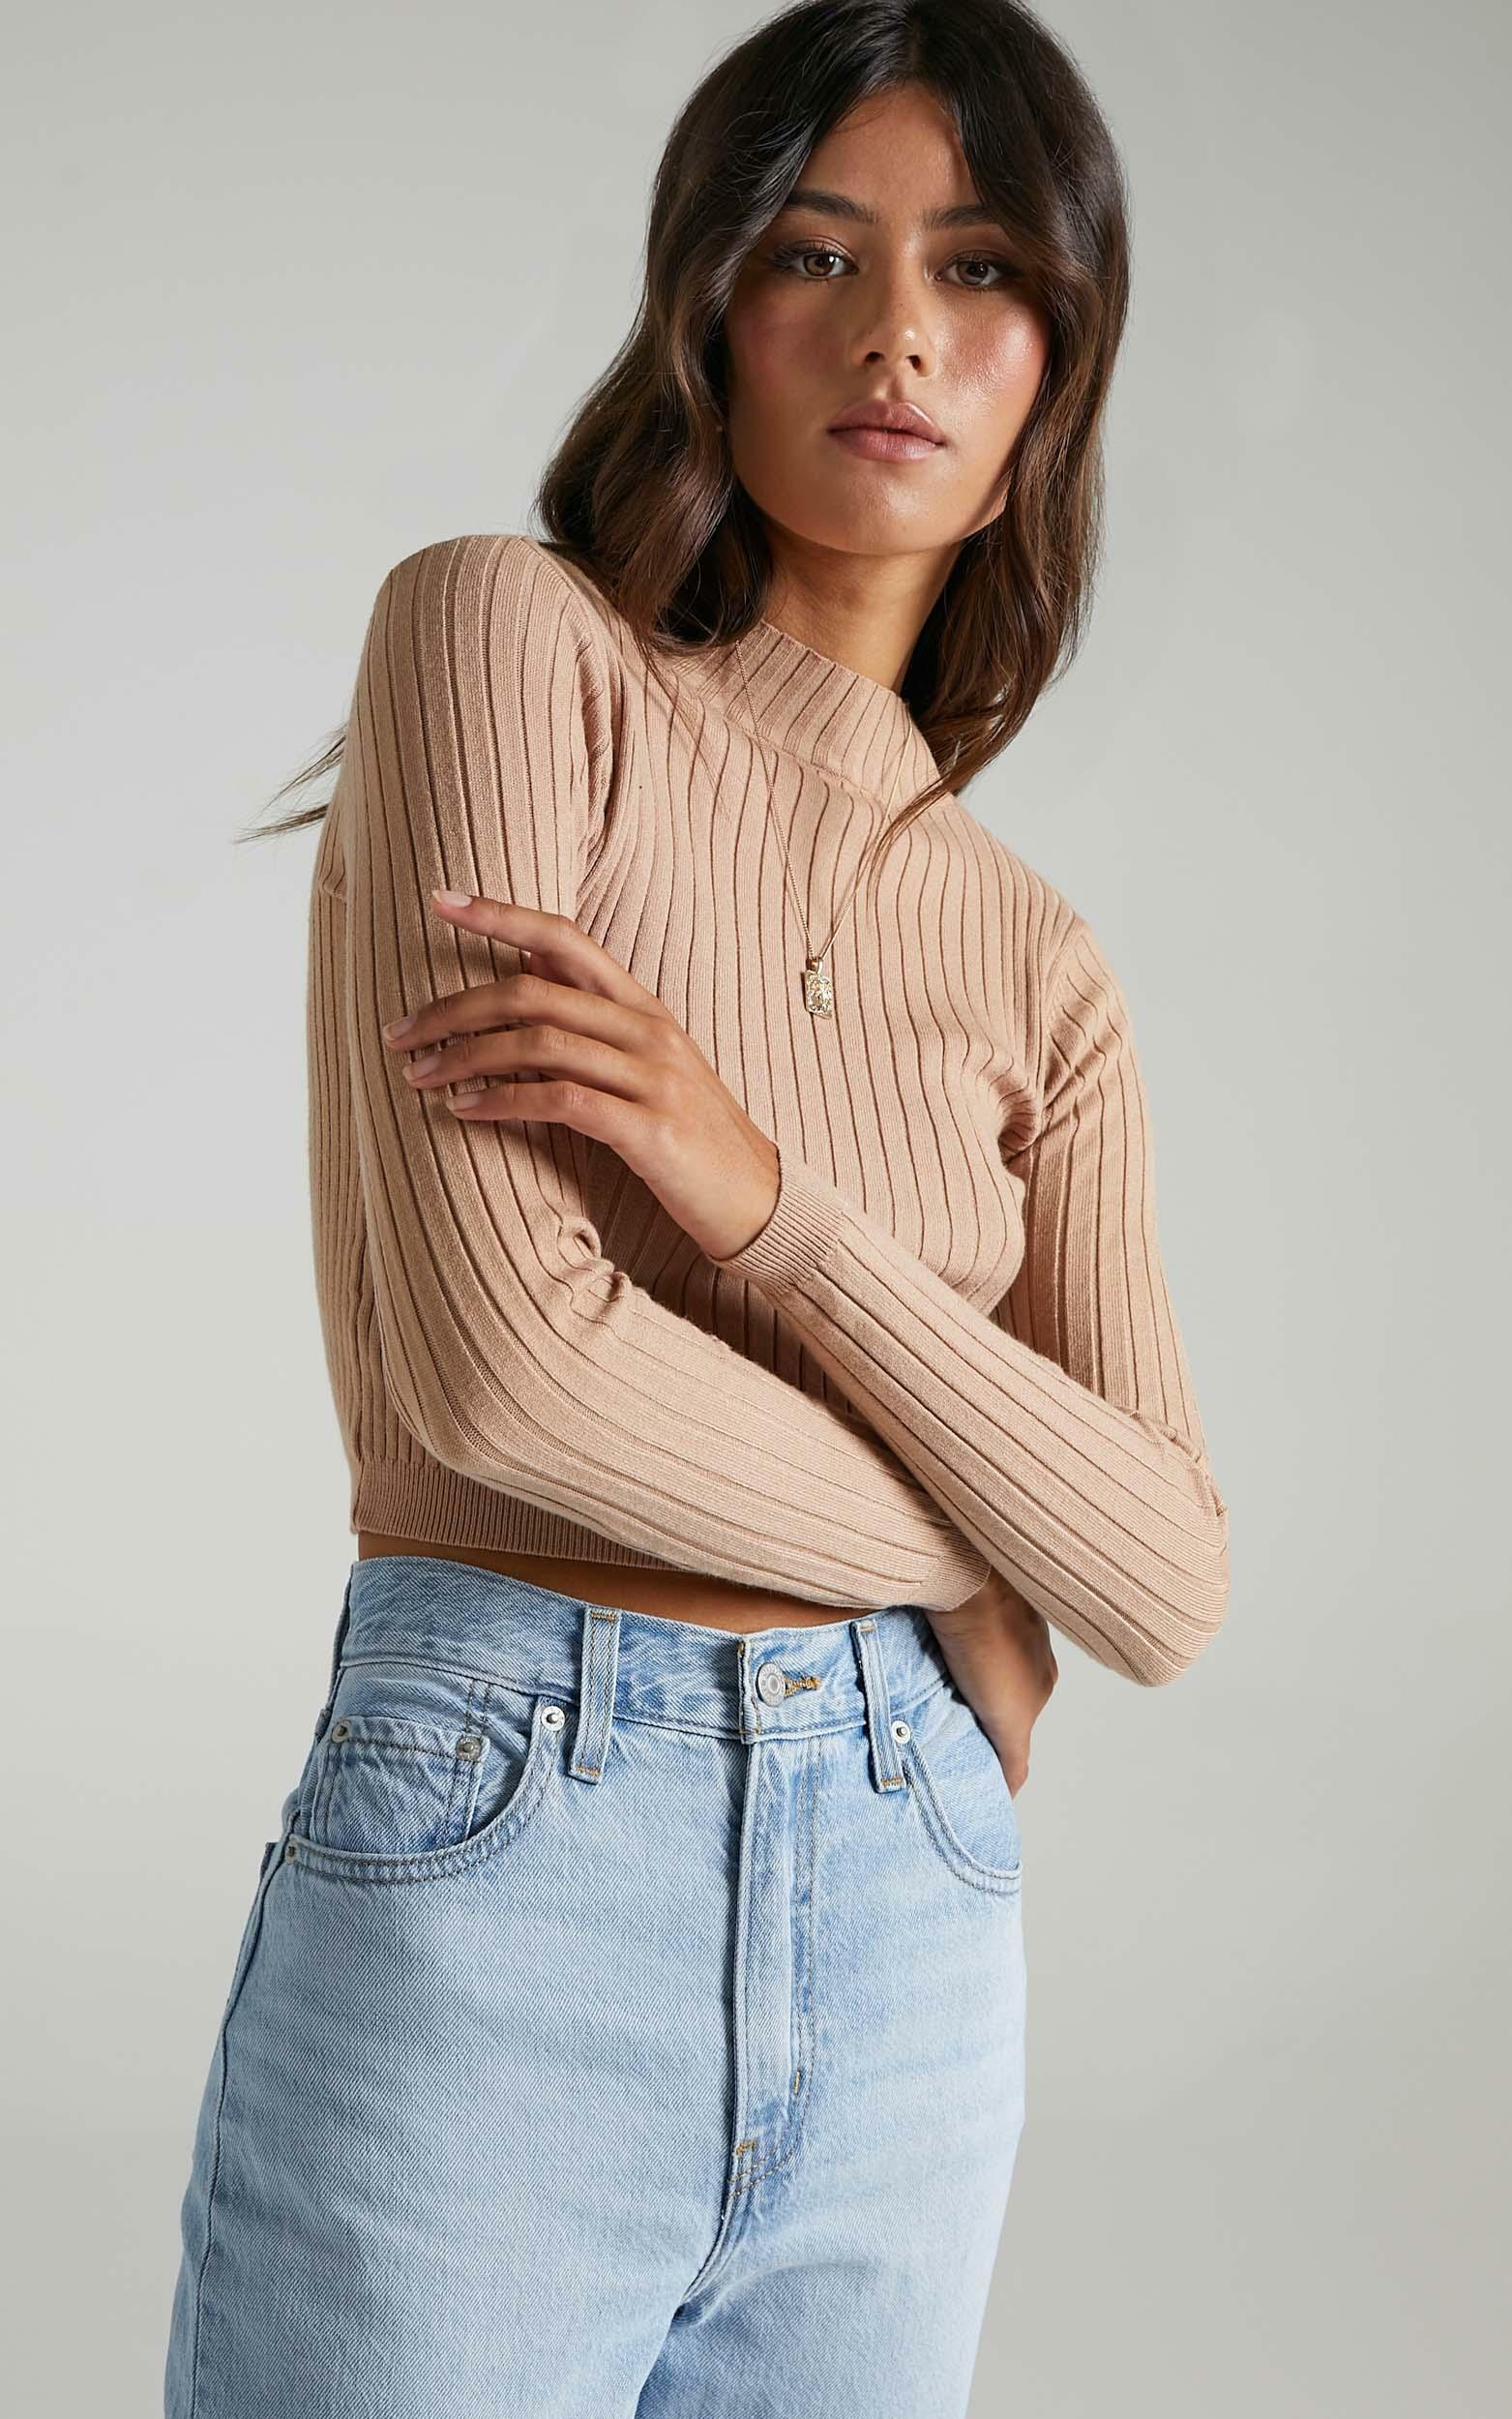 Downtown Dreams Knit top in Light Mocha - 6 (XS), Mocha, hi-res image number null